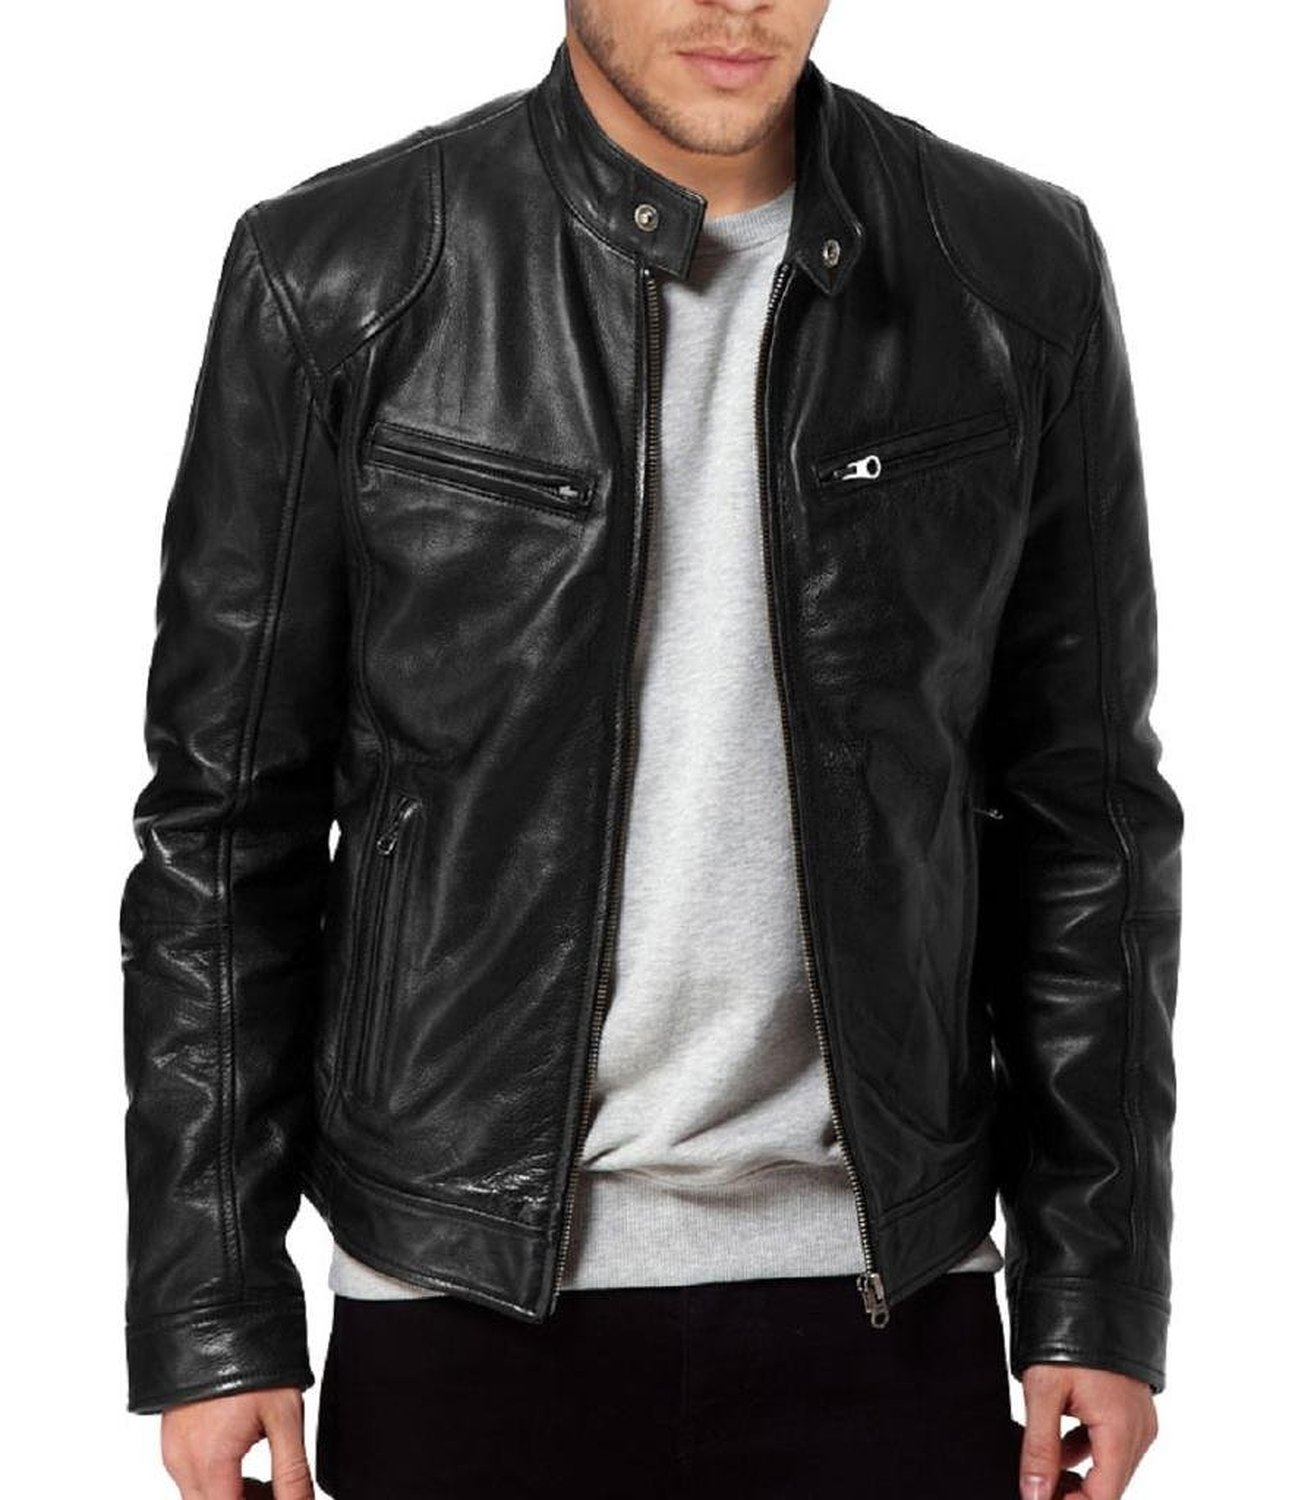 Men's SWORD Genuine Lambskin Black Leather Biker Jacket | Zed ...